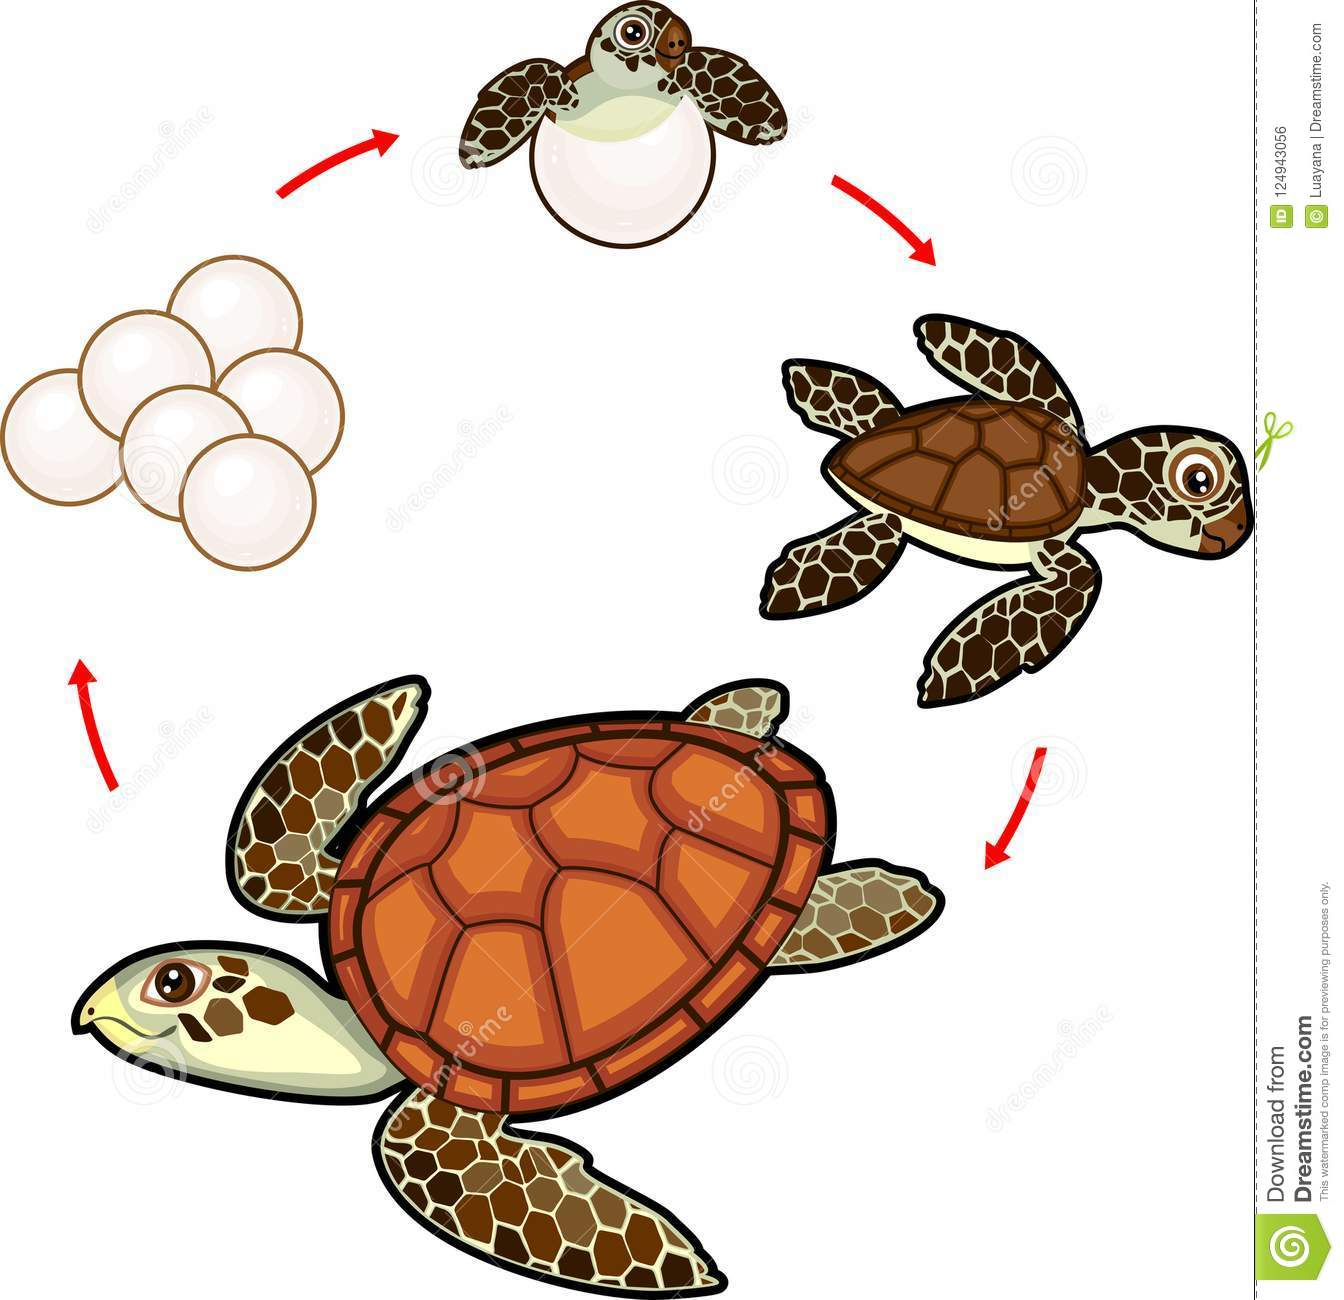 Life Cycle Of Sea Turtle Sequence Of Stages Of Development Of Turtle From Egg To Adult Animal